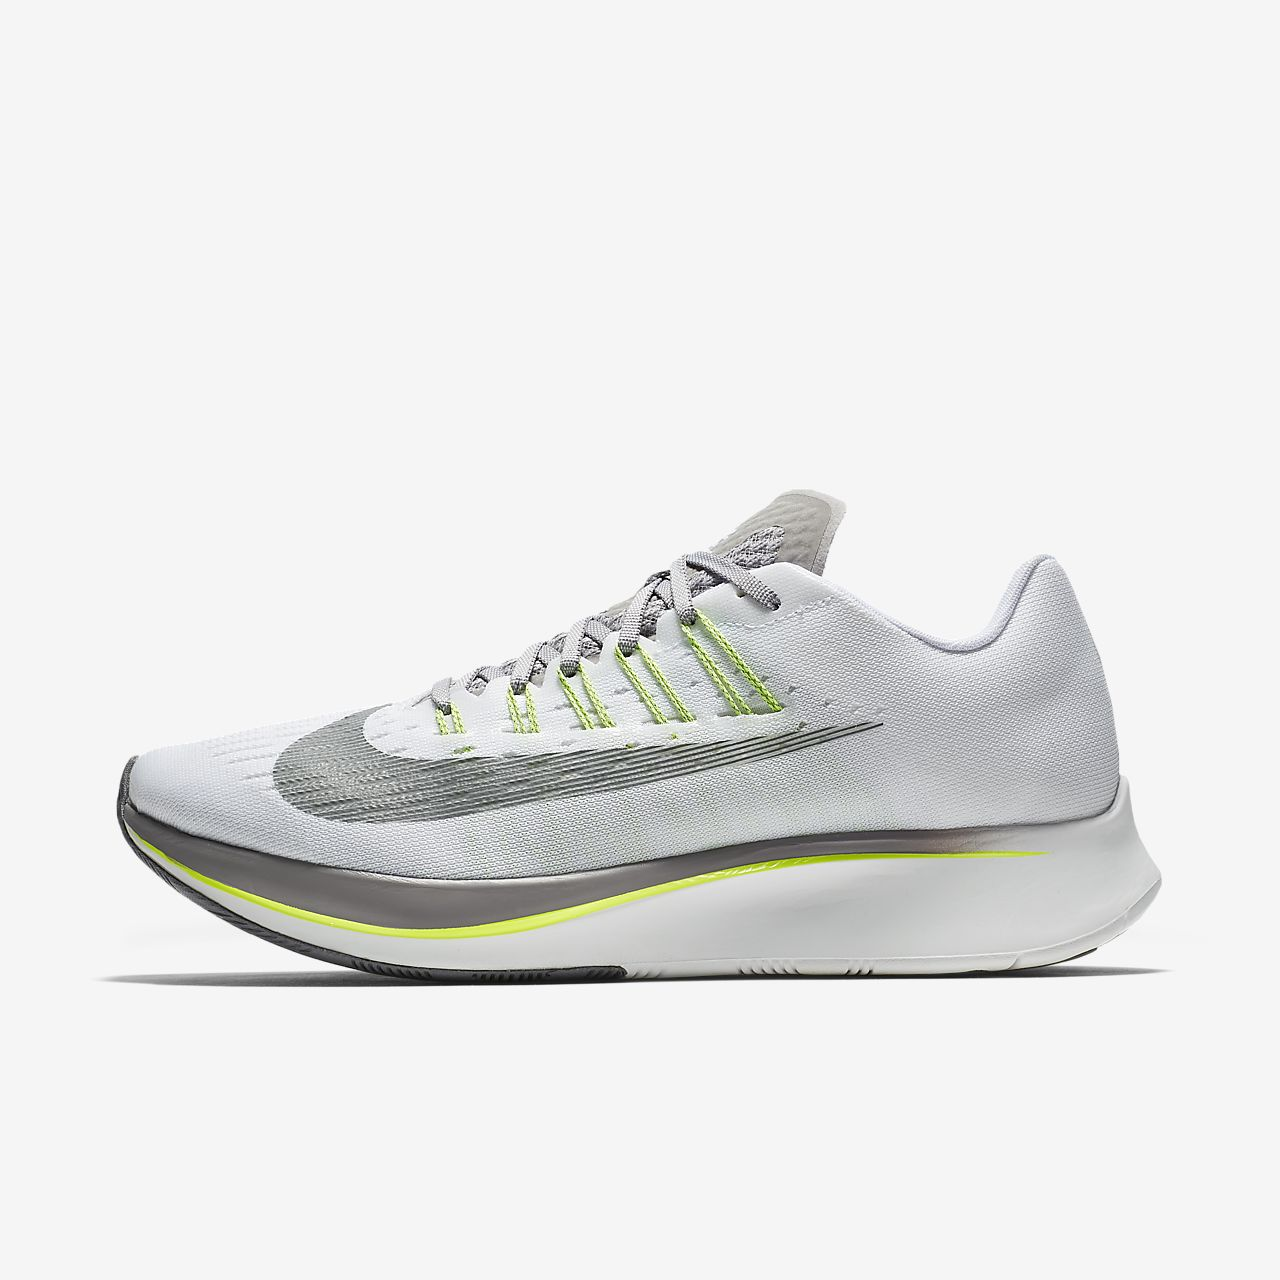 sports shoes 7e04e 6f3eb ... Nike Zoom Fly Men s Running Shoe